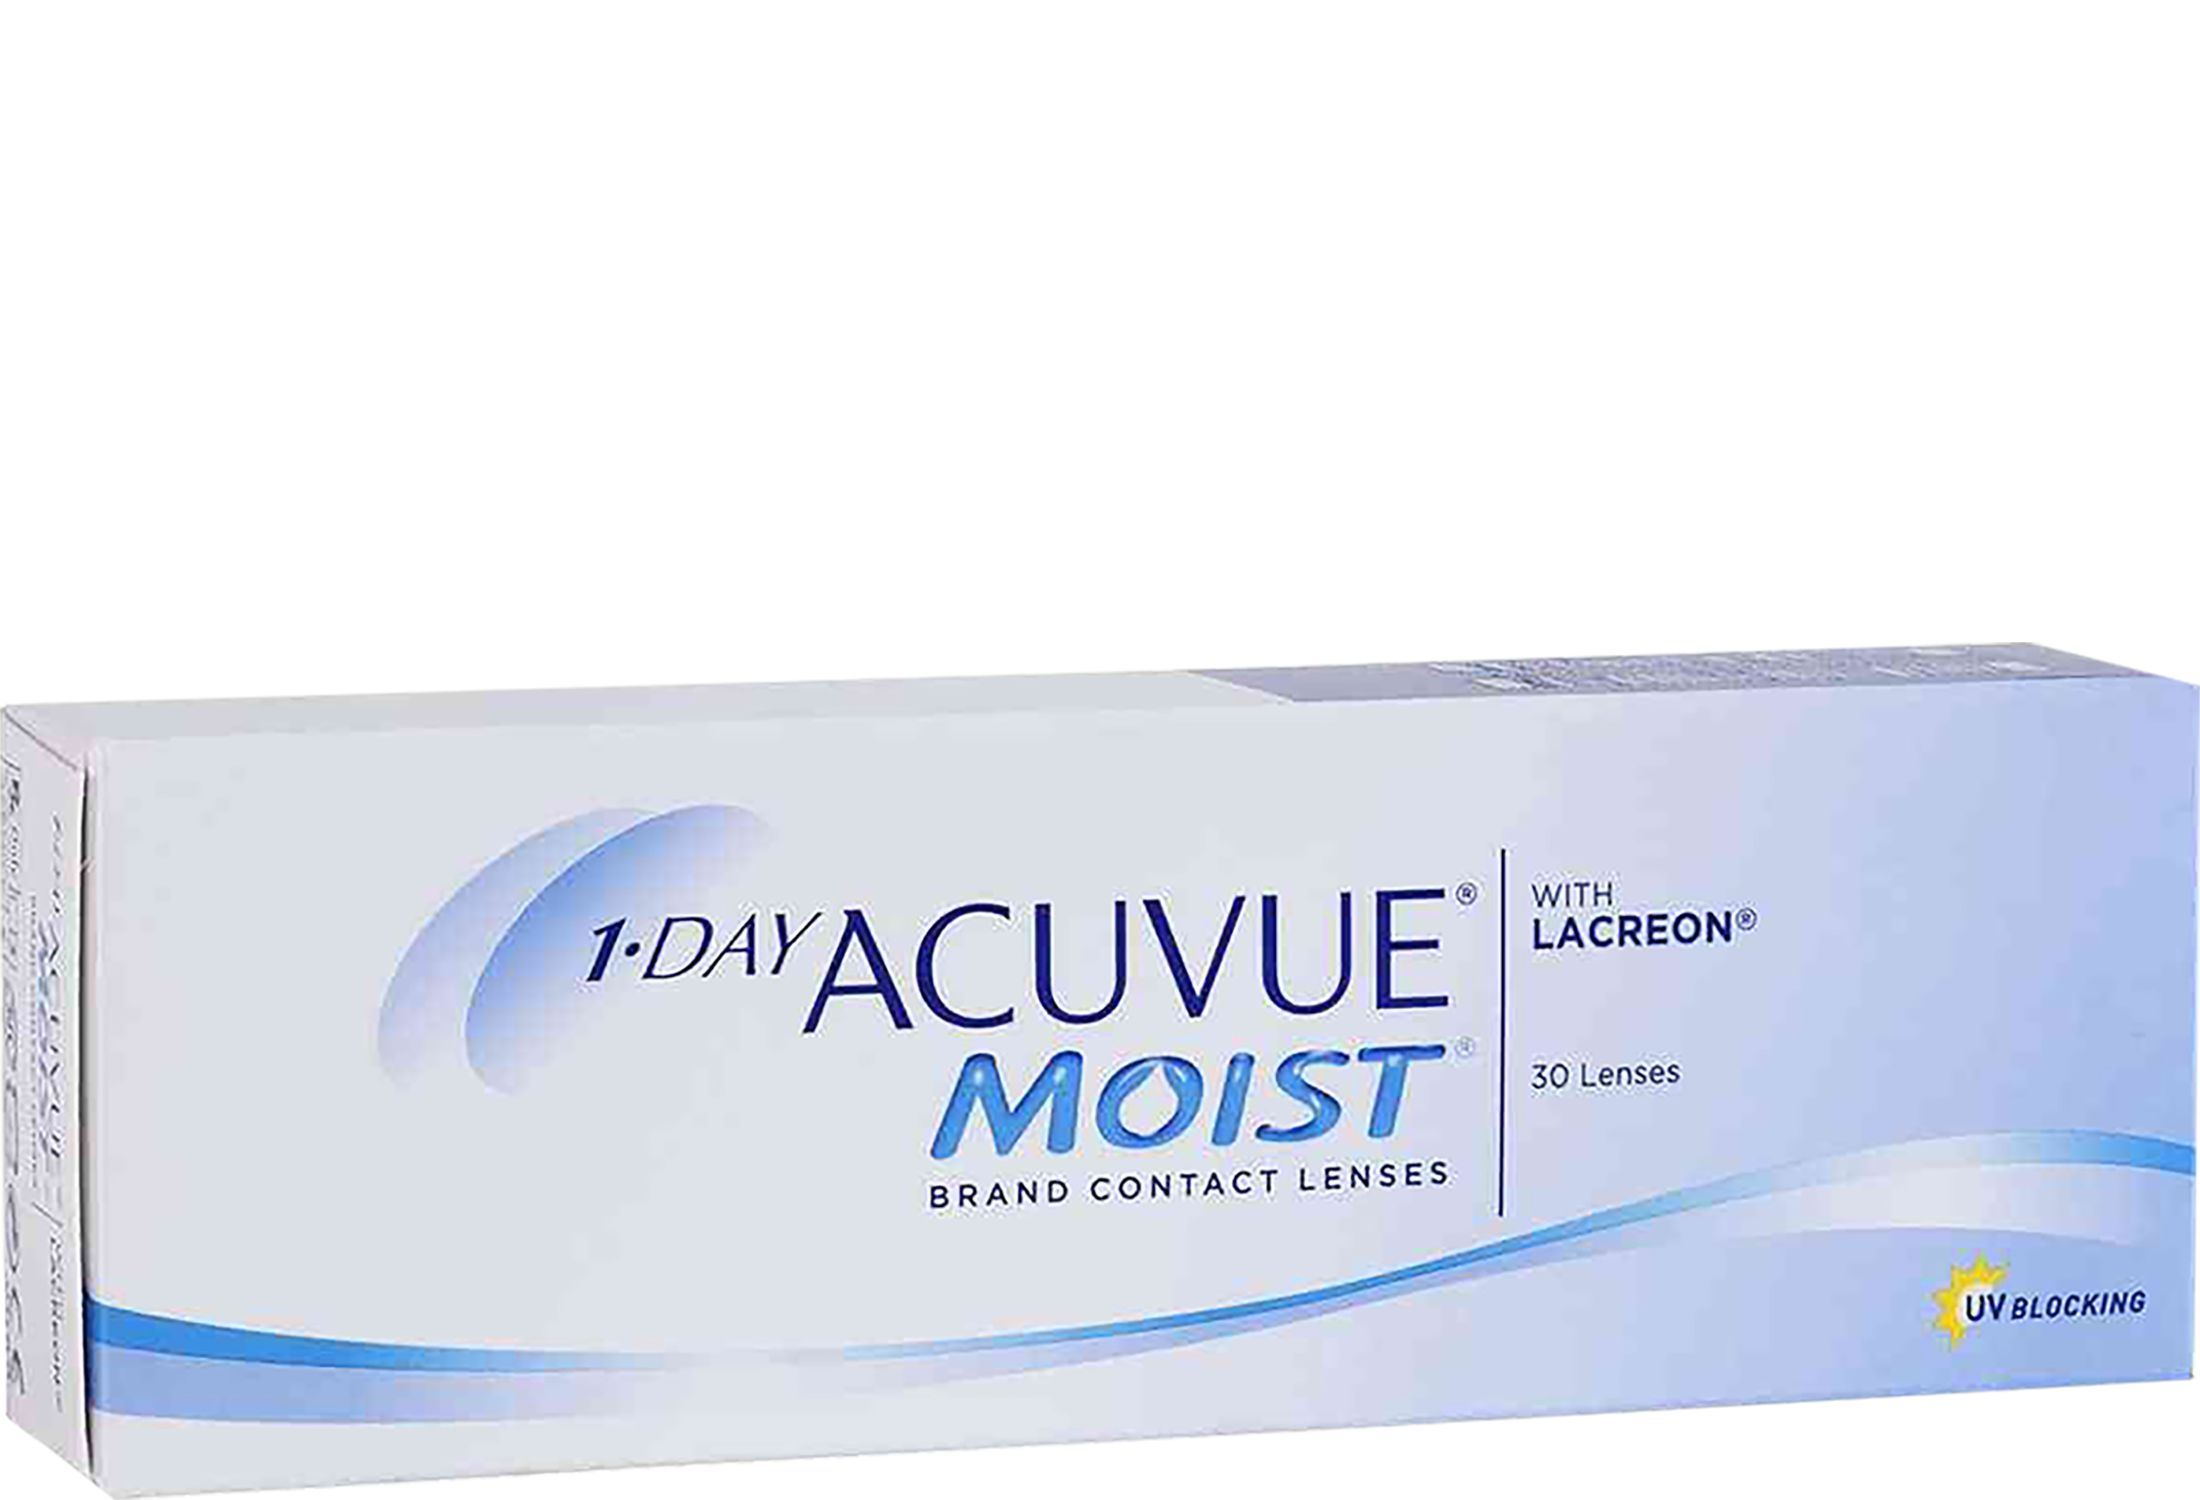 1-DAY ACUVUE 30 stk